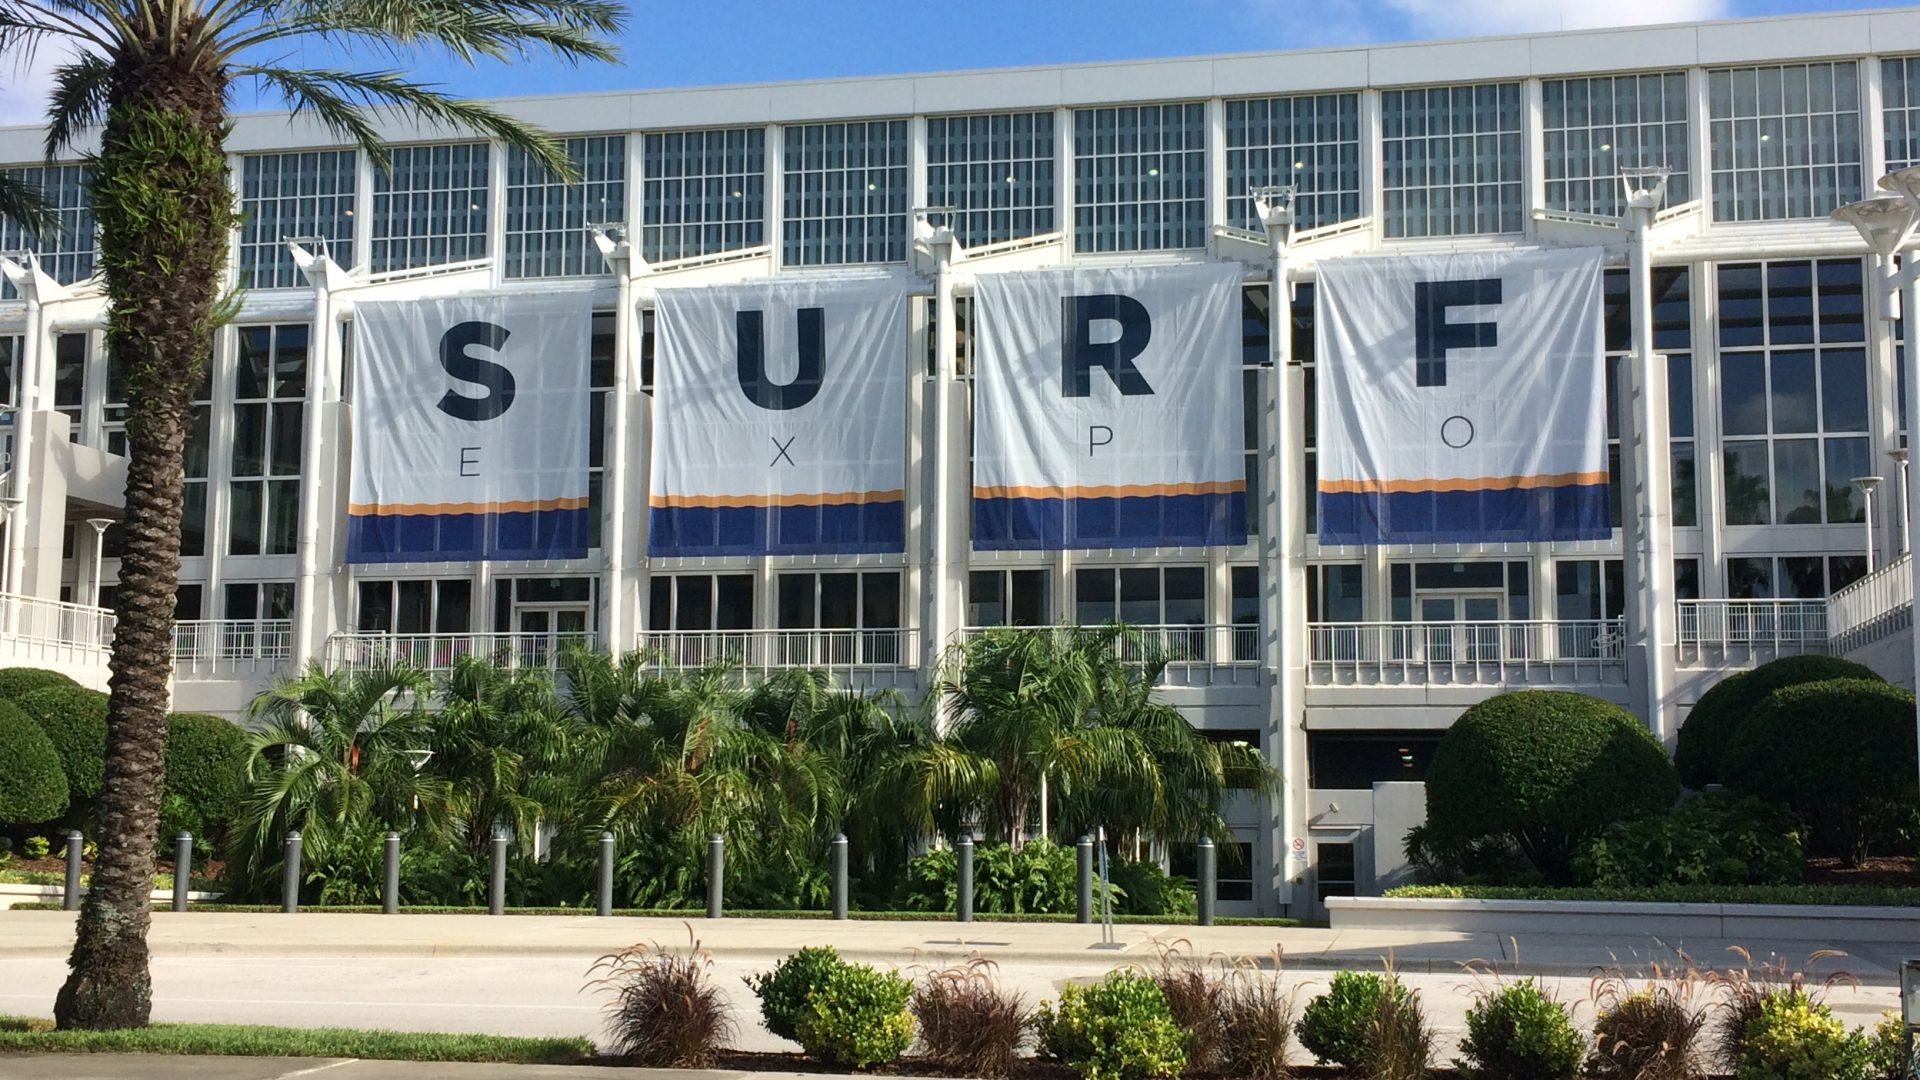 1 Surf Expo took place inside its regular venue Orange County Convention Center In Orland Florida